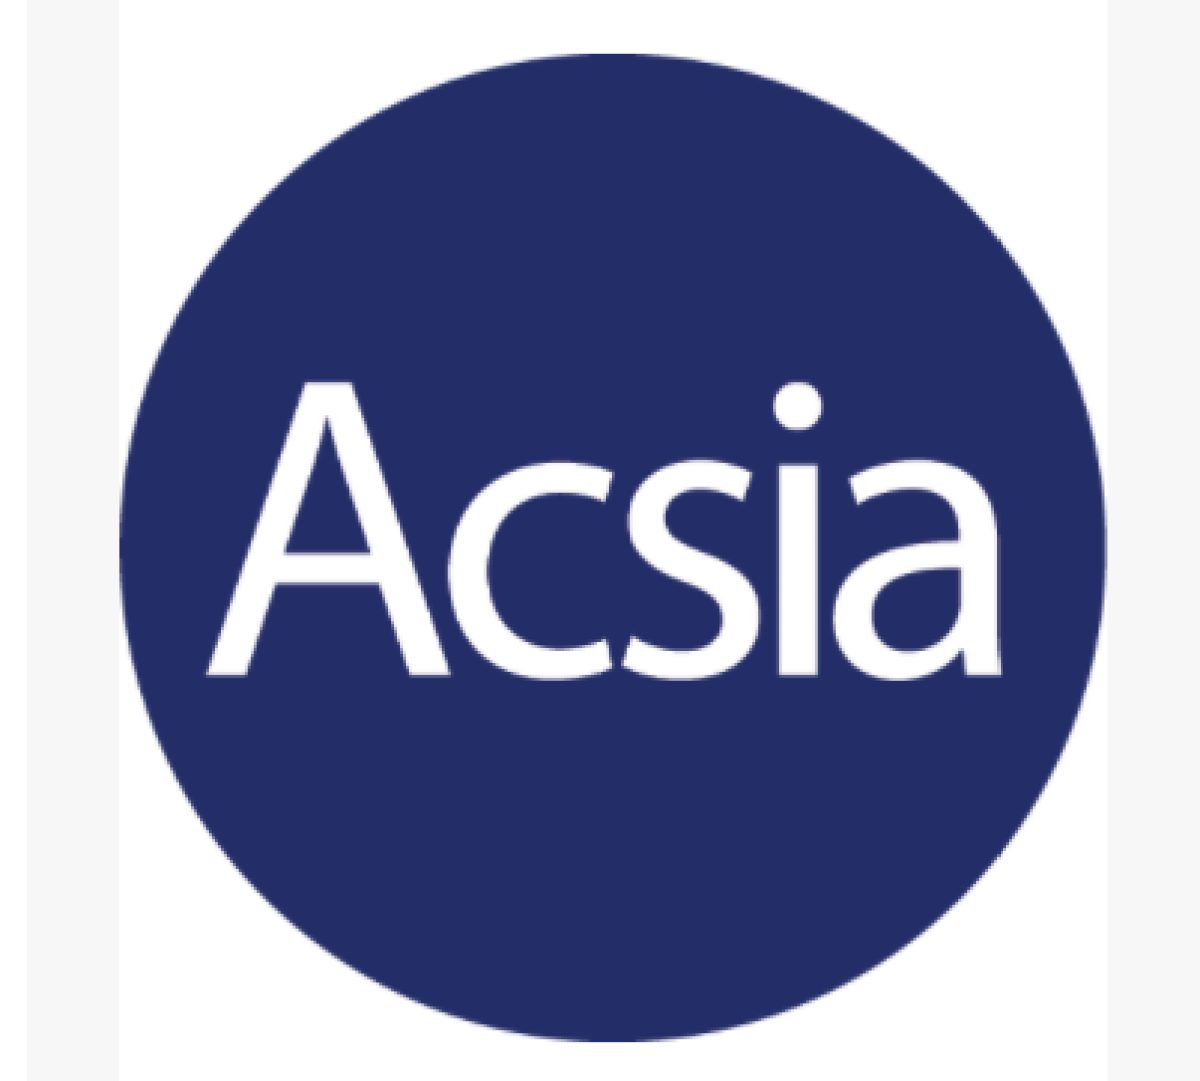 Acsia Technologies joins hands with Basemark; to develop software-defined car technology